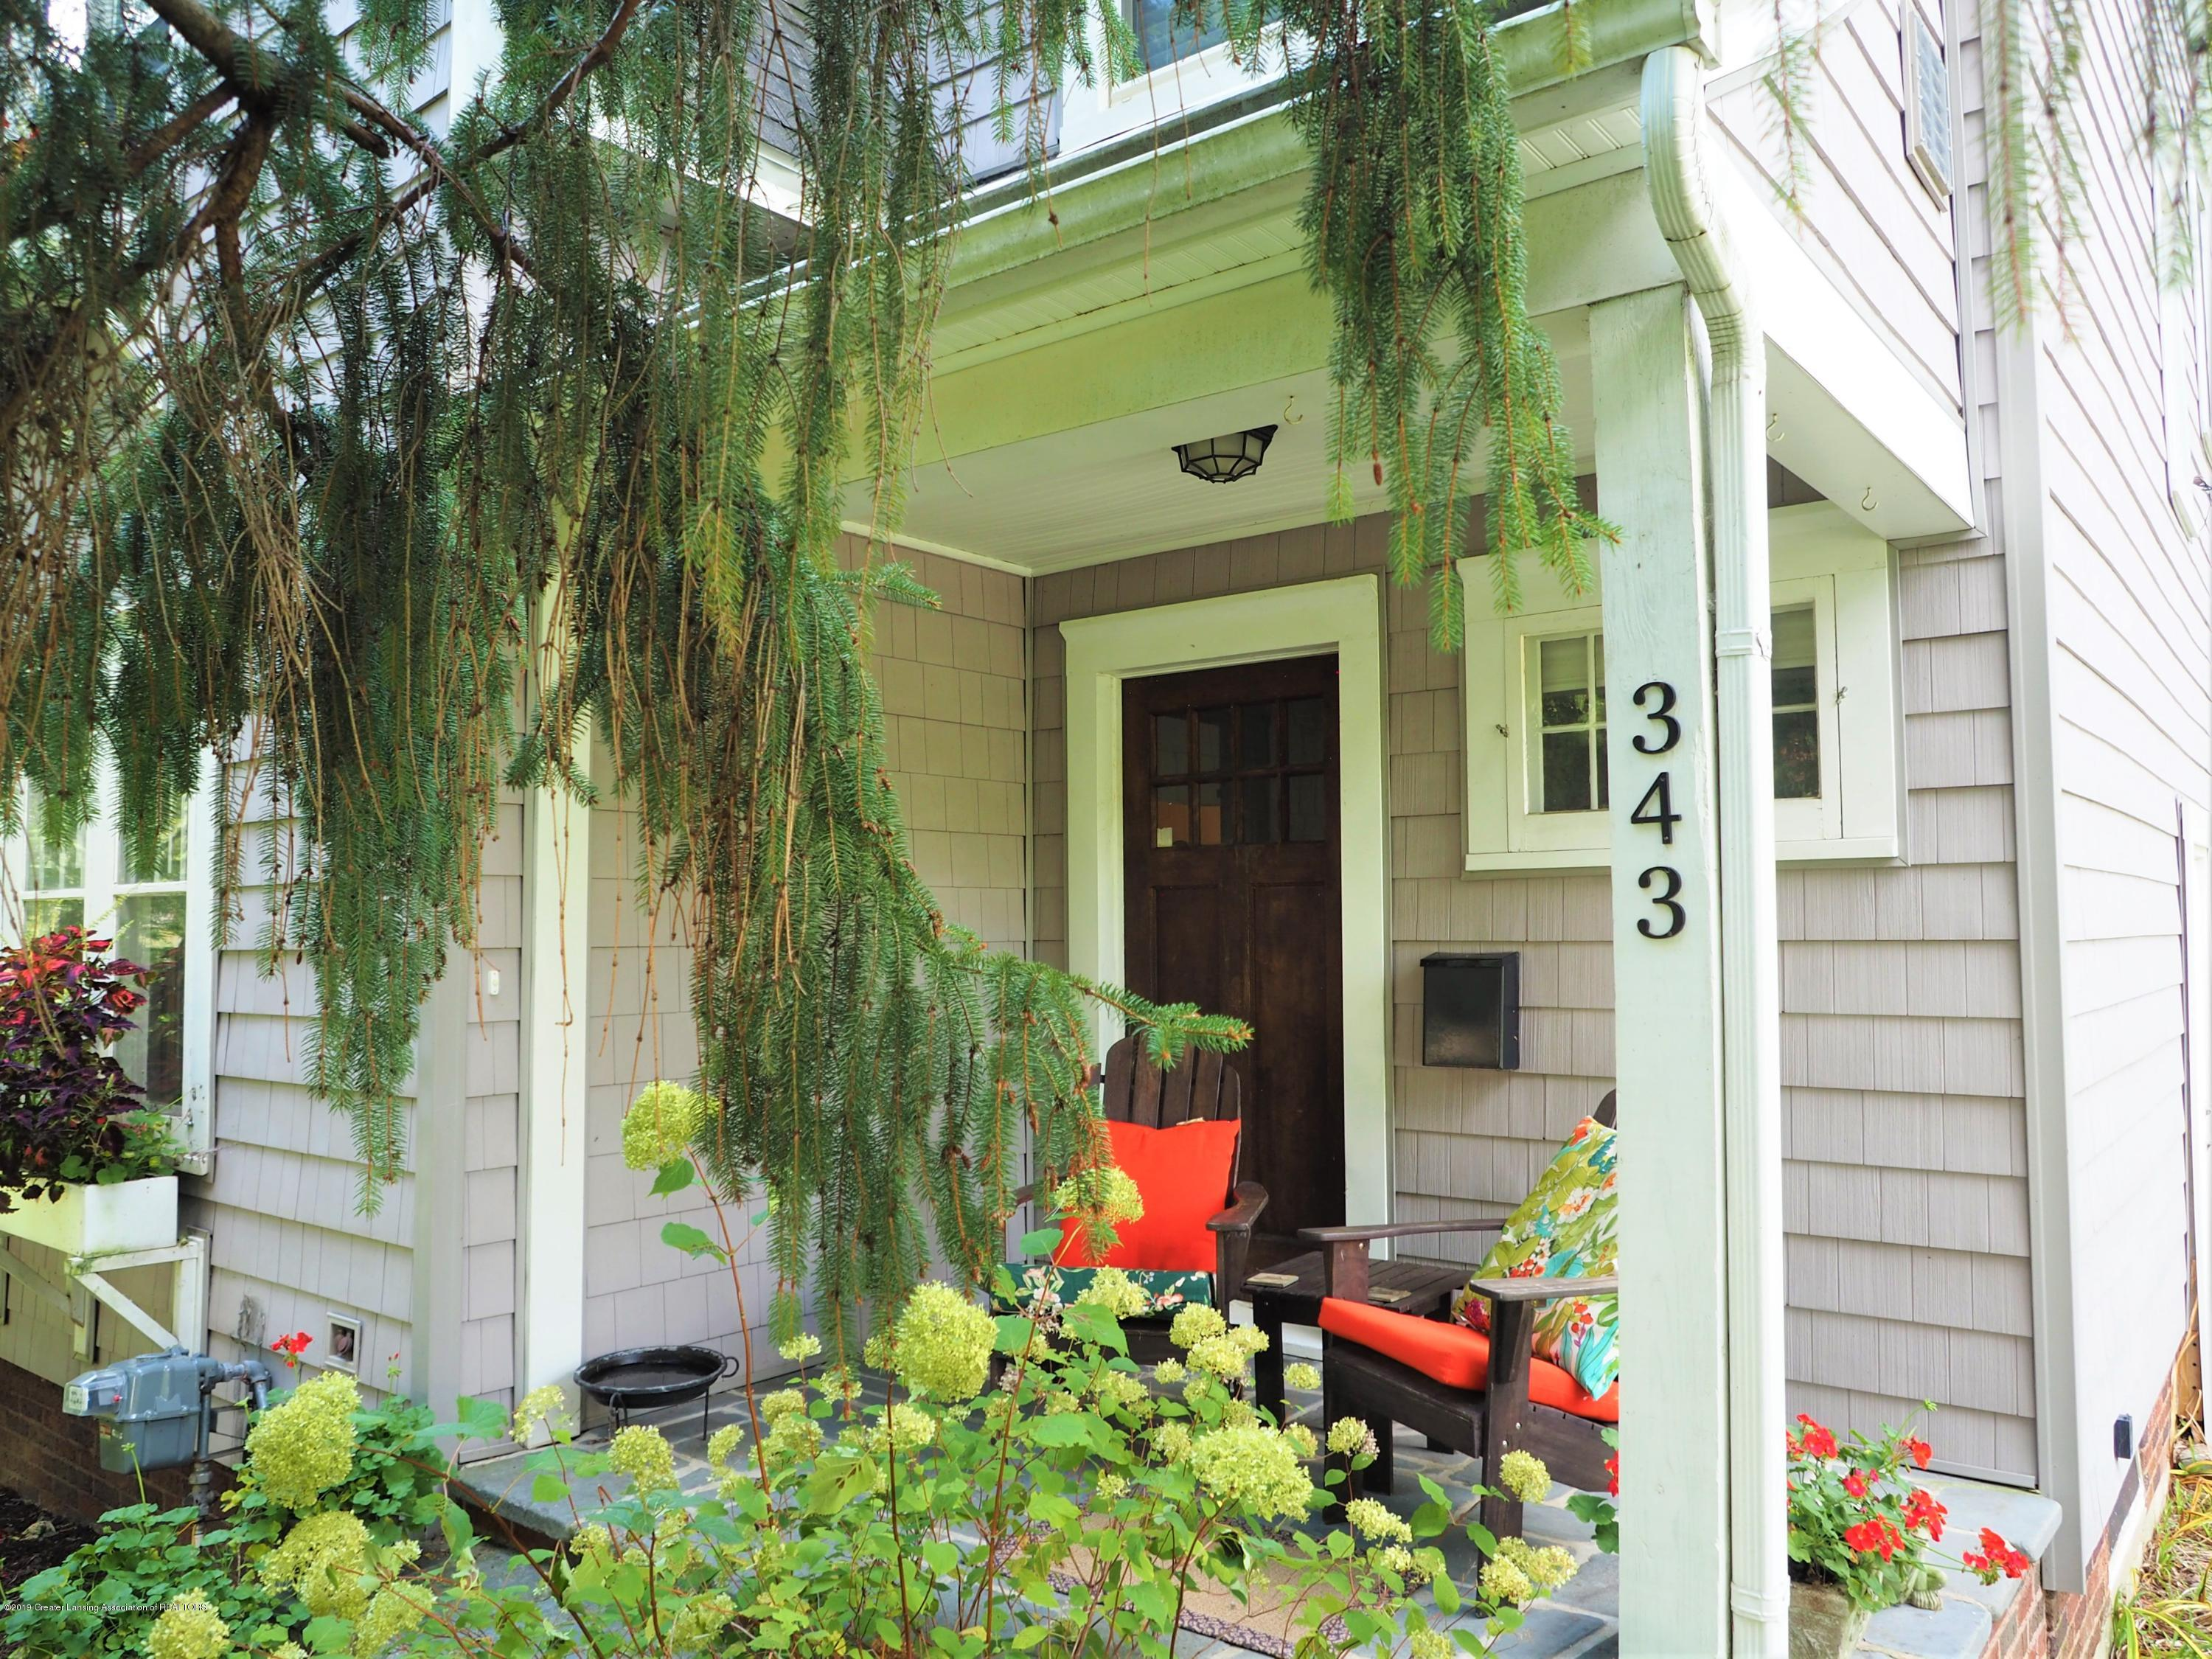 343 Cowley Ave - P1011452 - 3